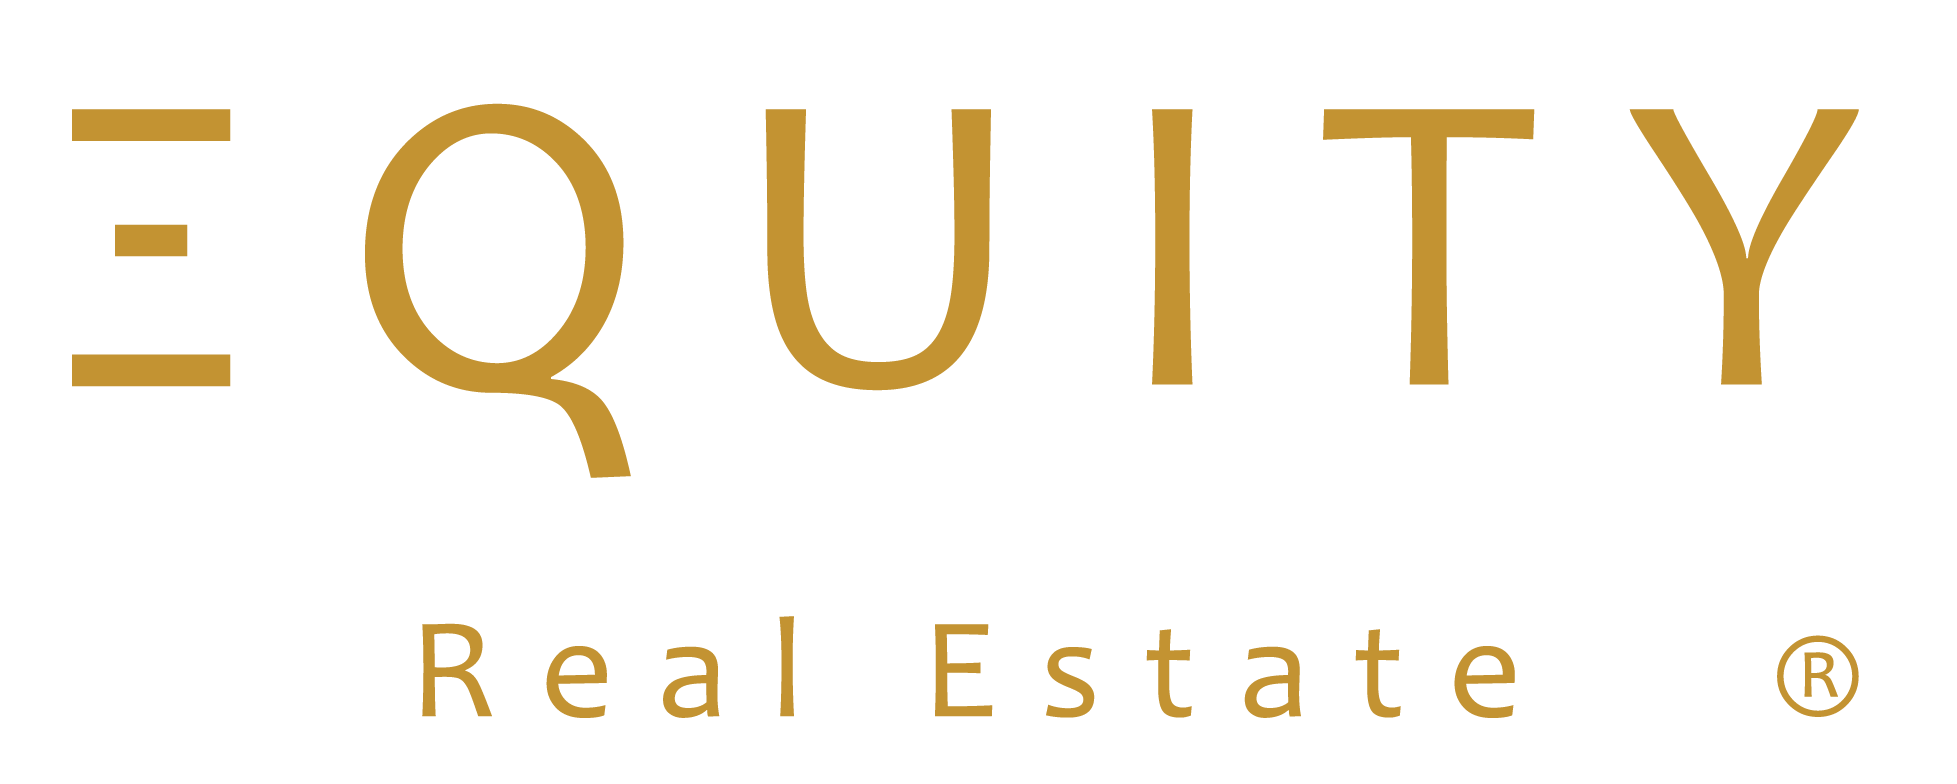 EQUITY_LOGO_RGB-01.png